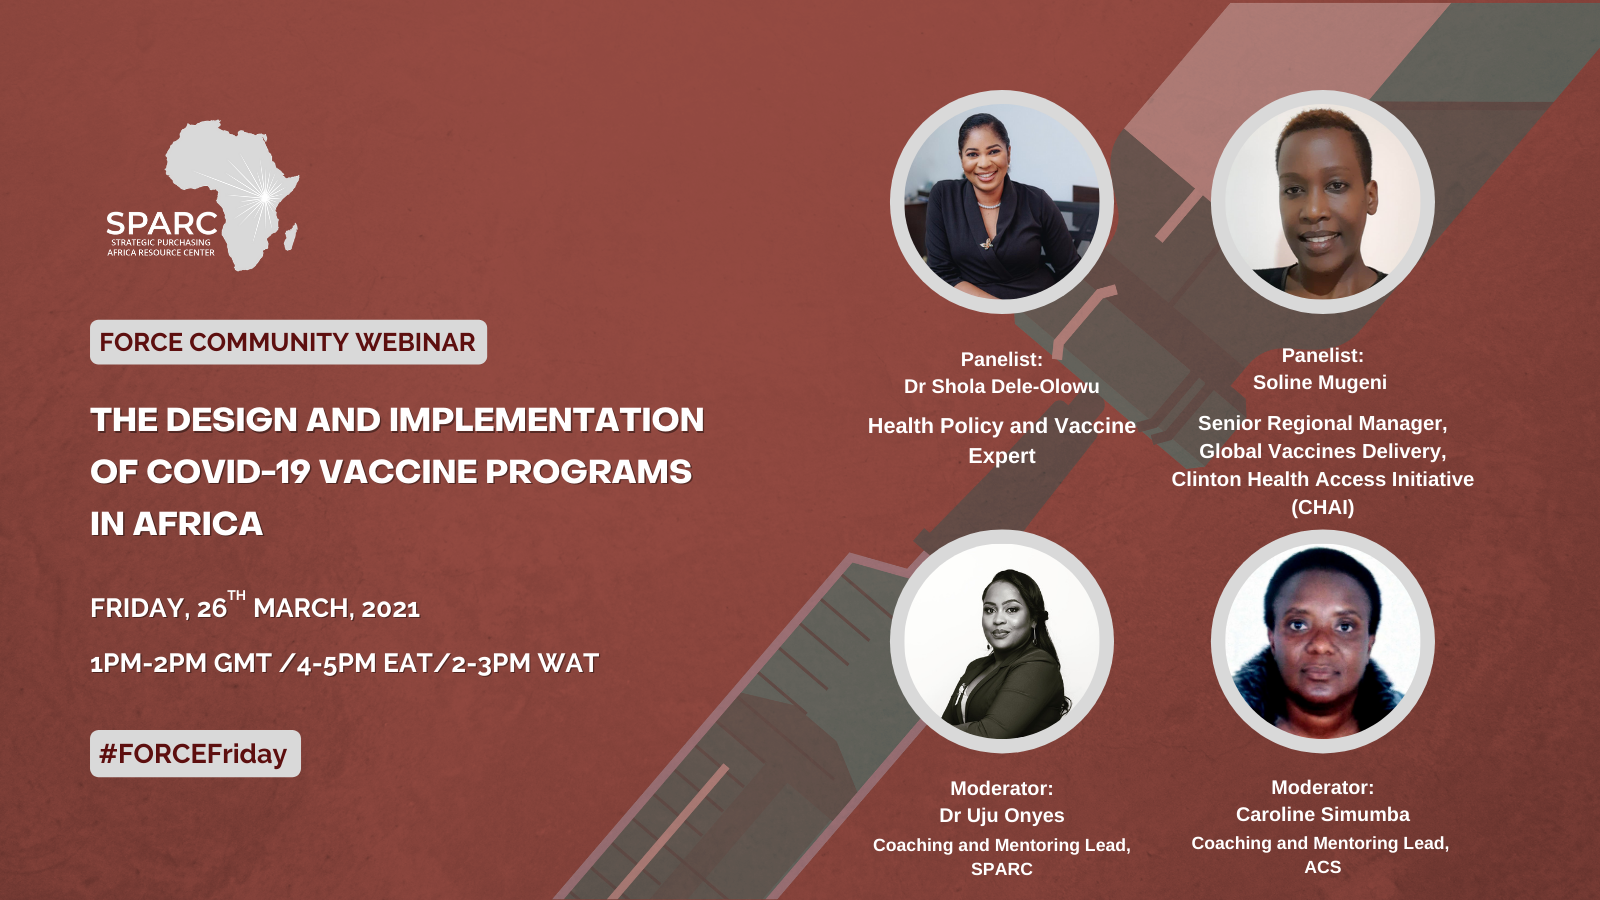 Key Messages from the March FORCE Community Webinar – The Design and Implementation of COVID-19 Vaccine Programs in Africa